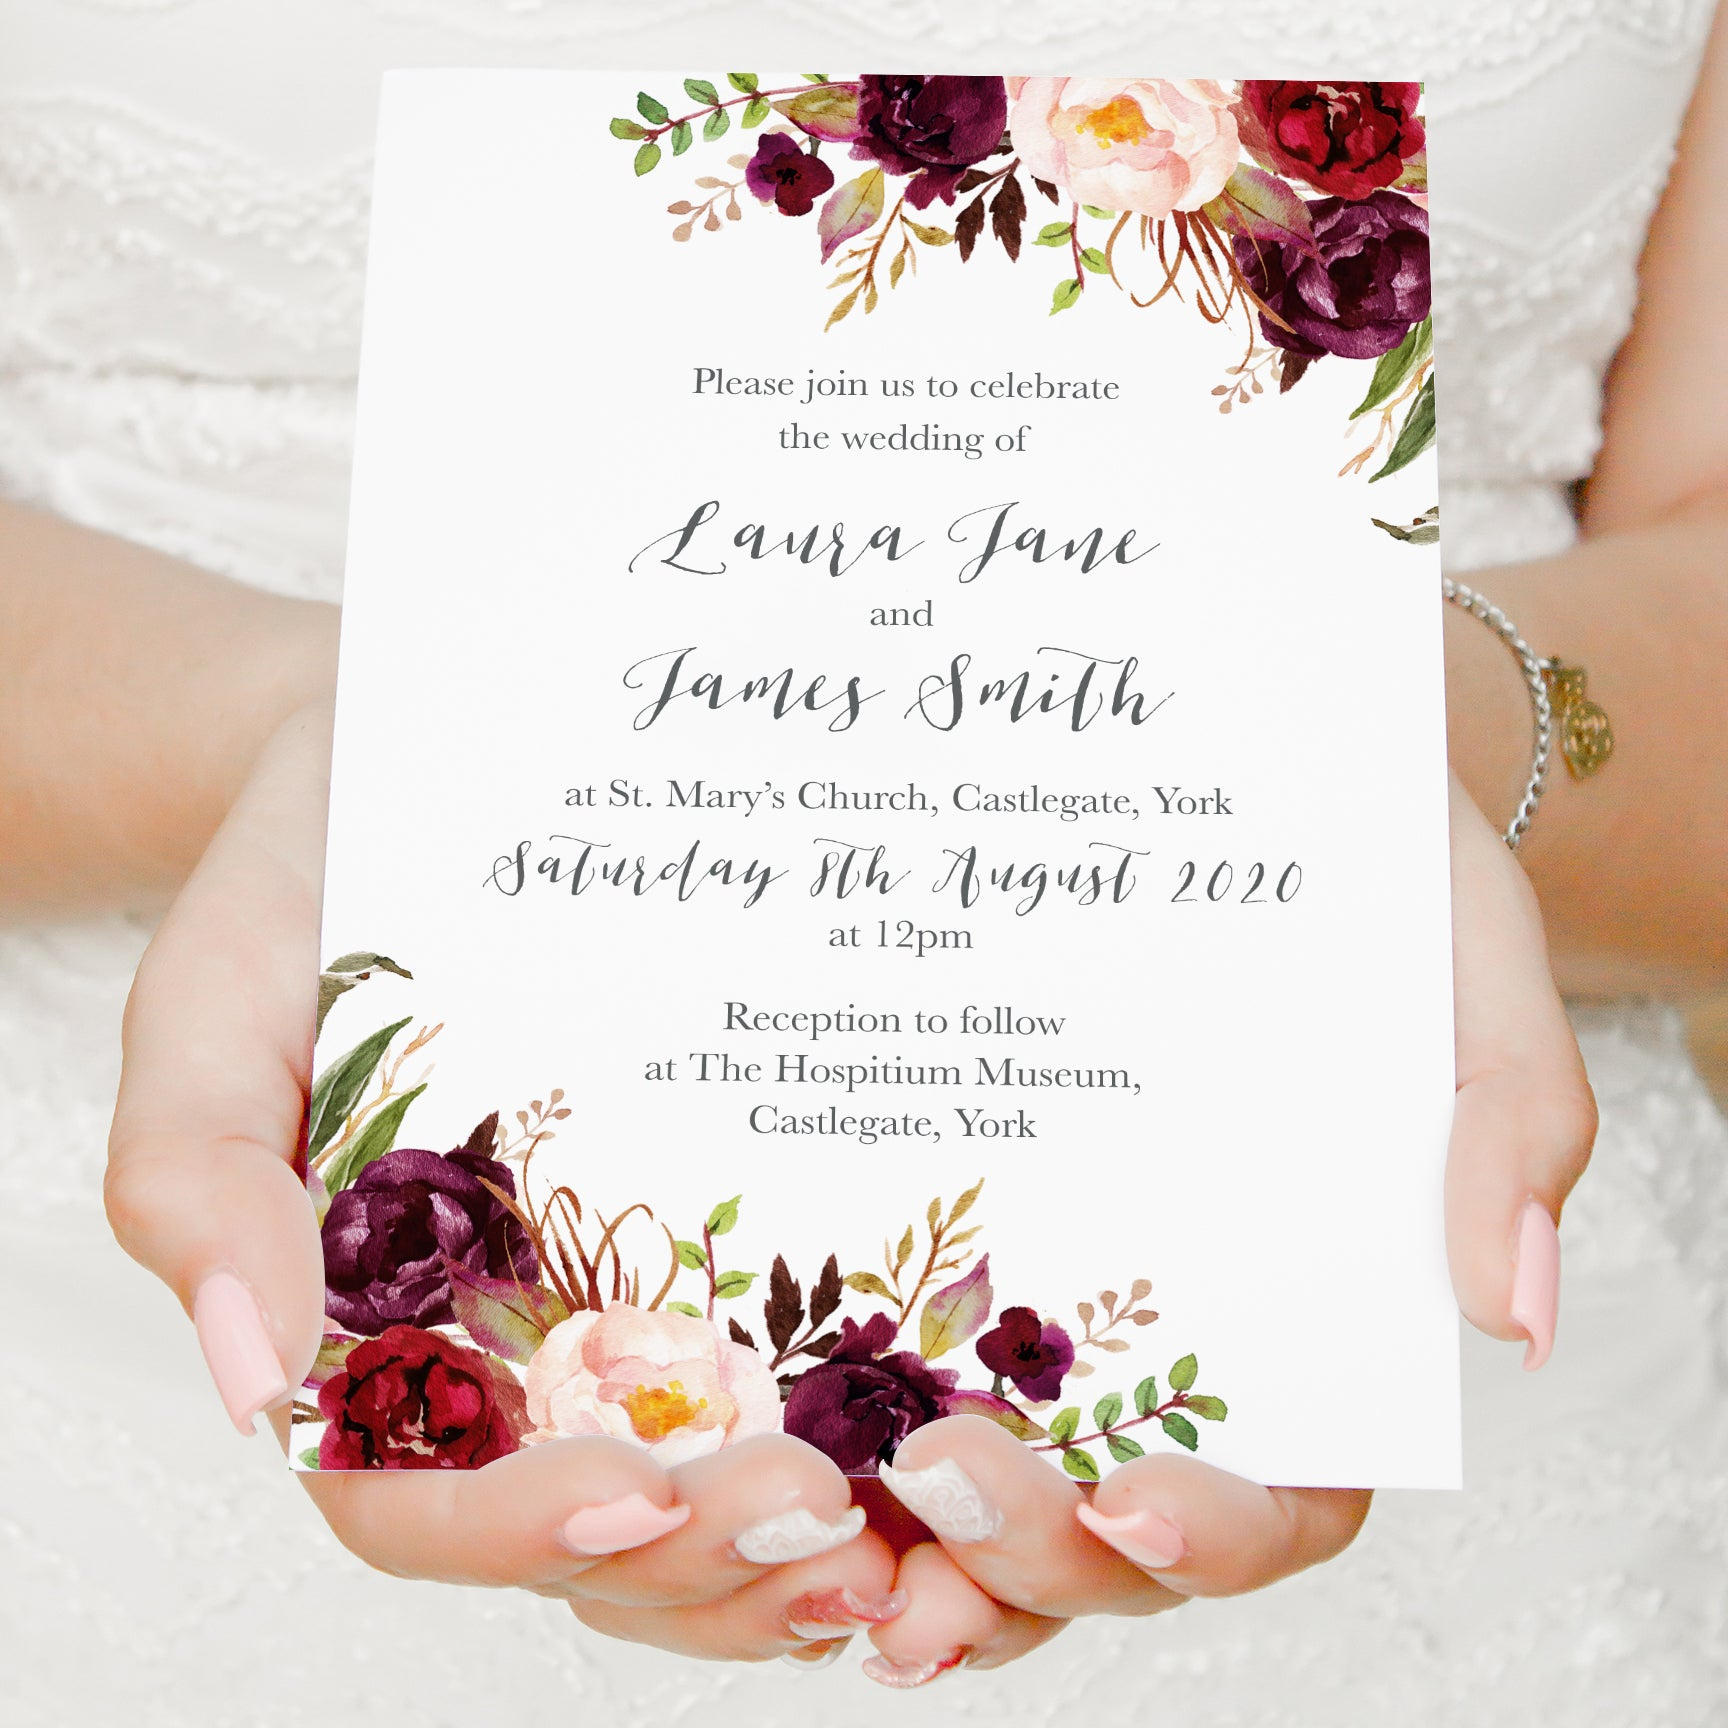 Wedding Invitations With Red Roses: Boho Red Rose Wedding Invitations, Floral Edge, Burgundy